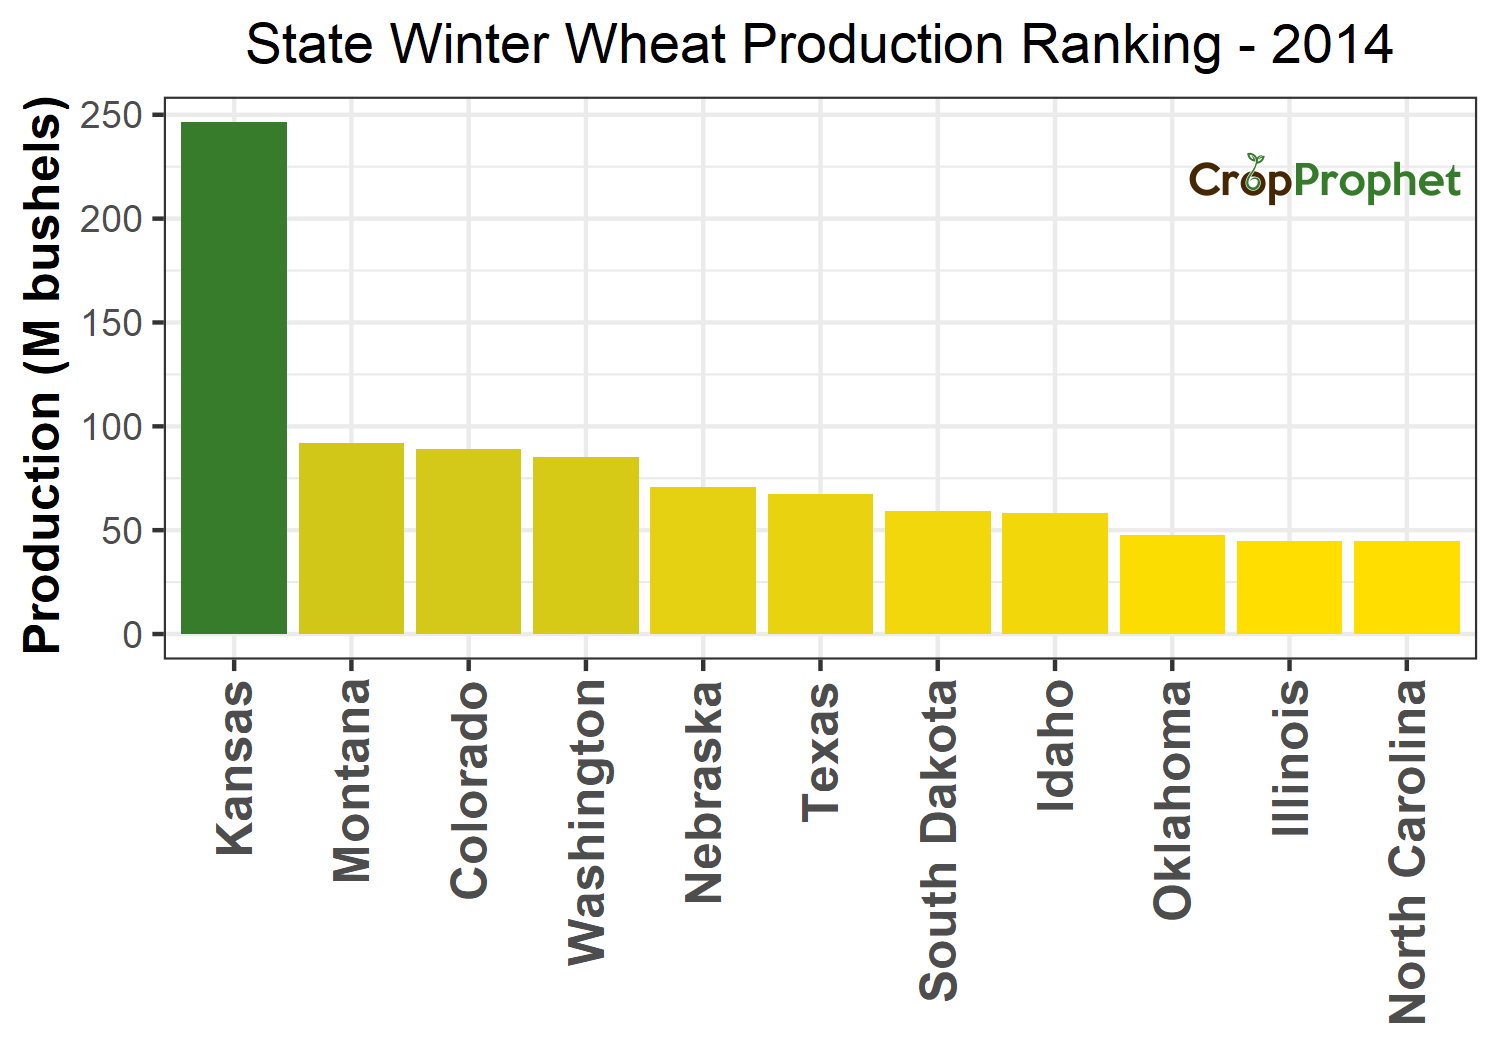 Winter wheat Production by State - 2014 Rankings